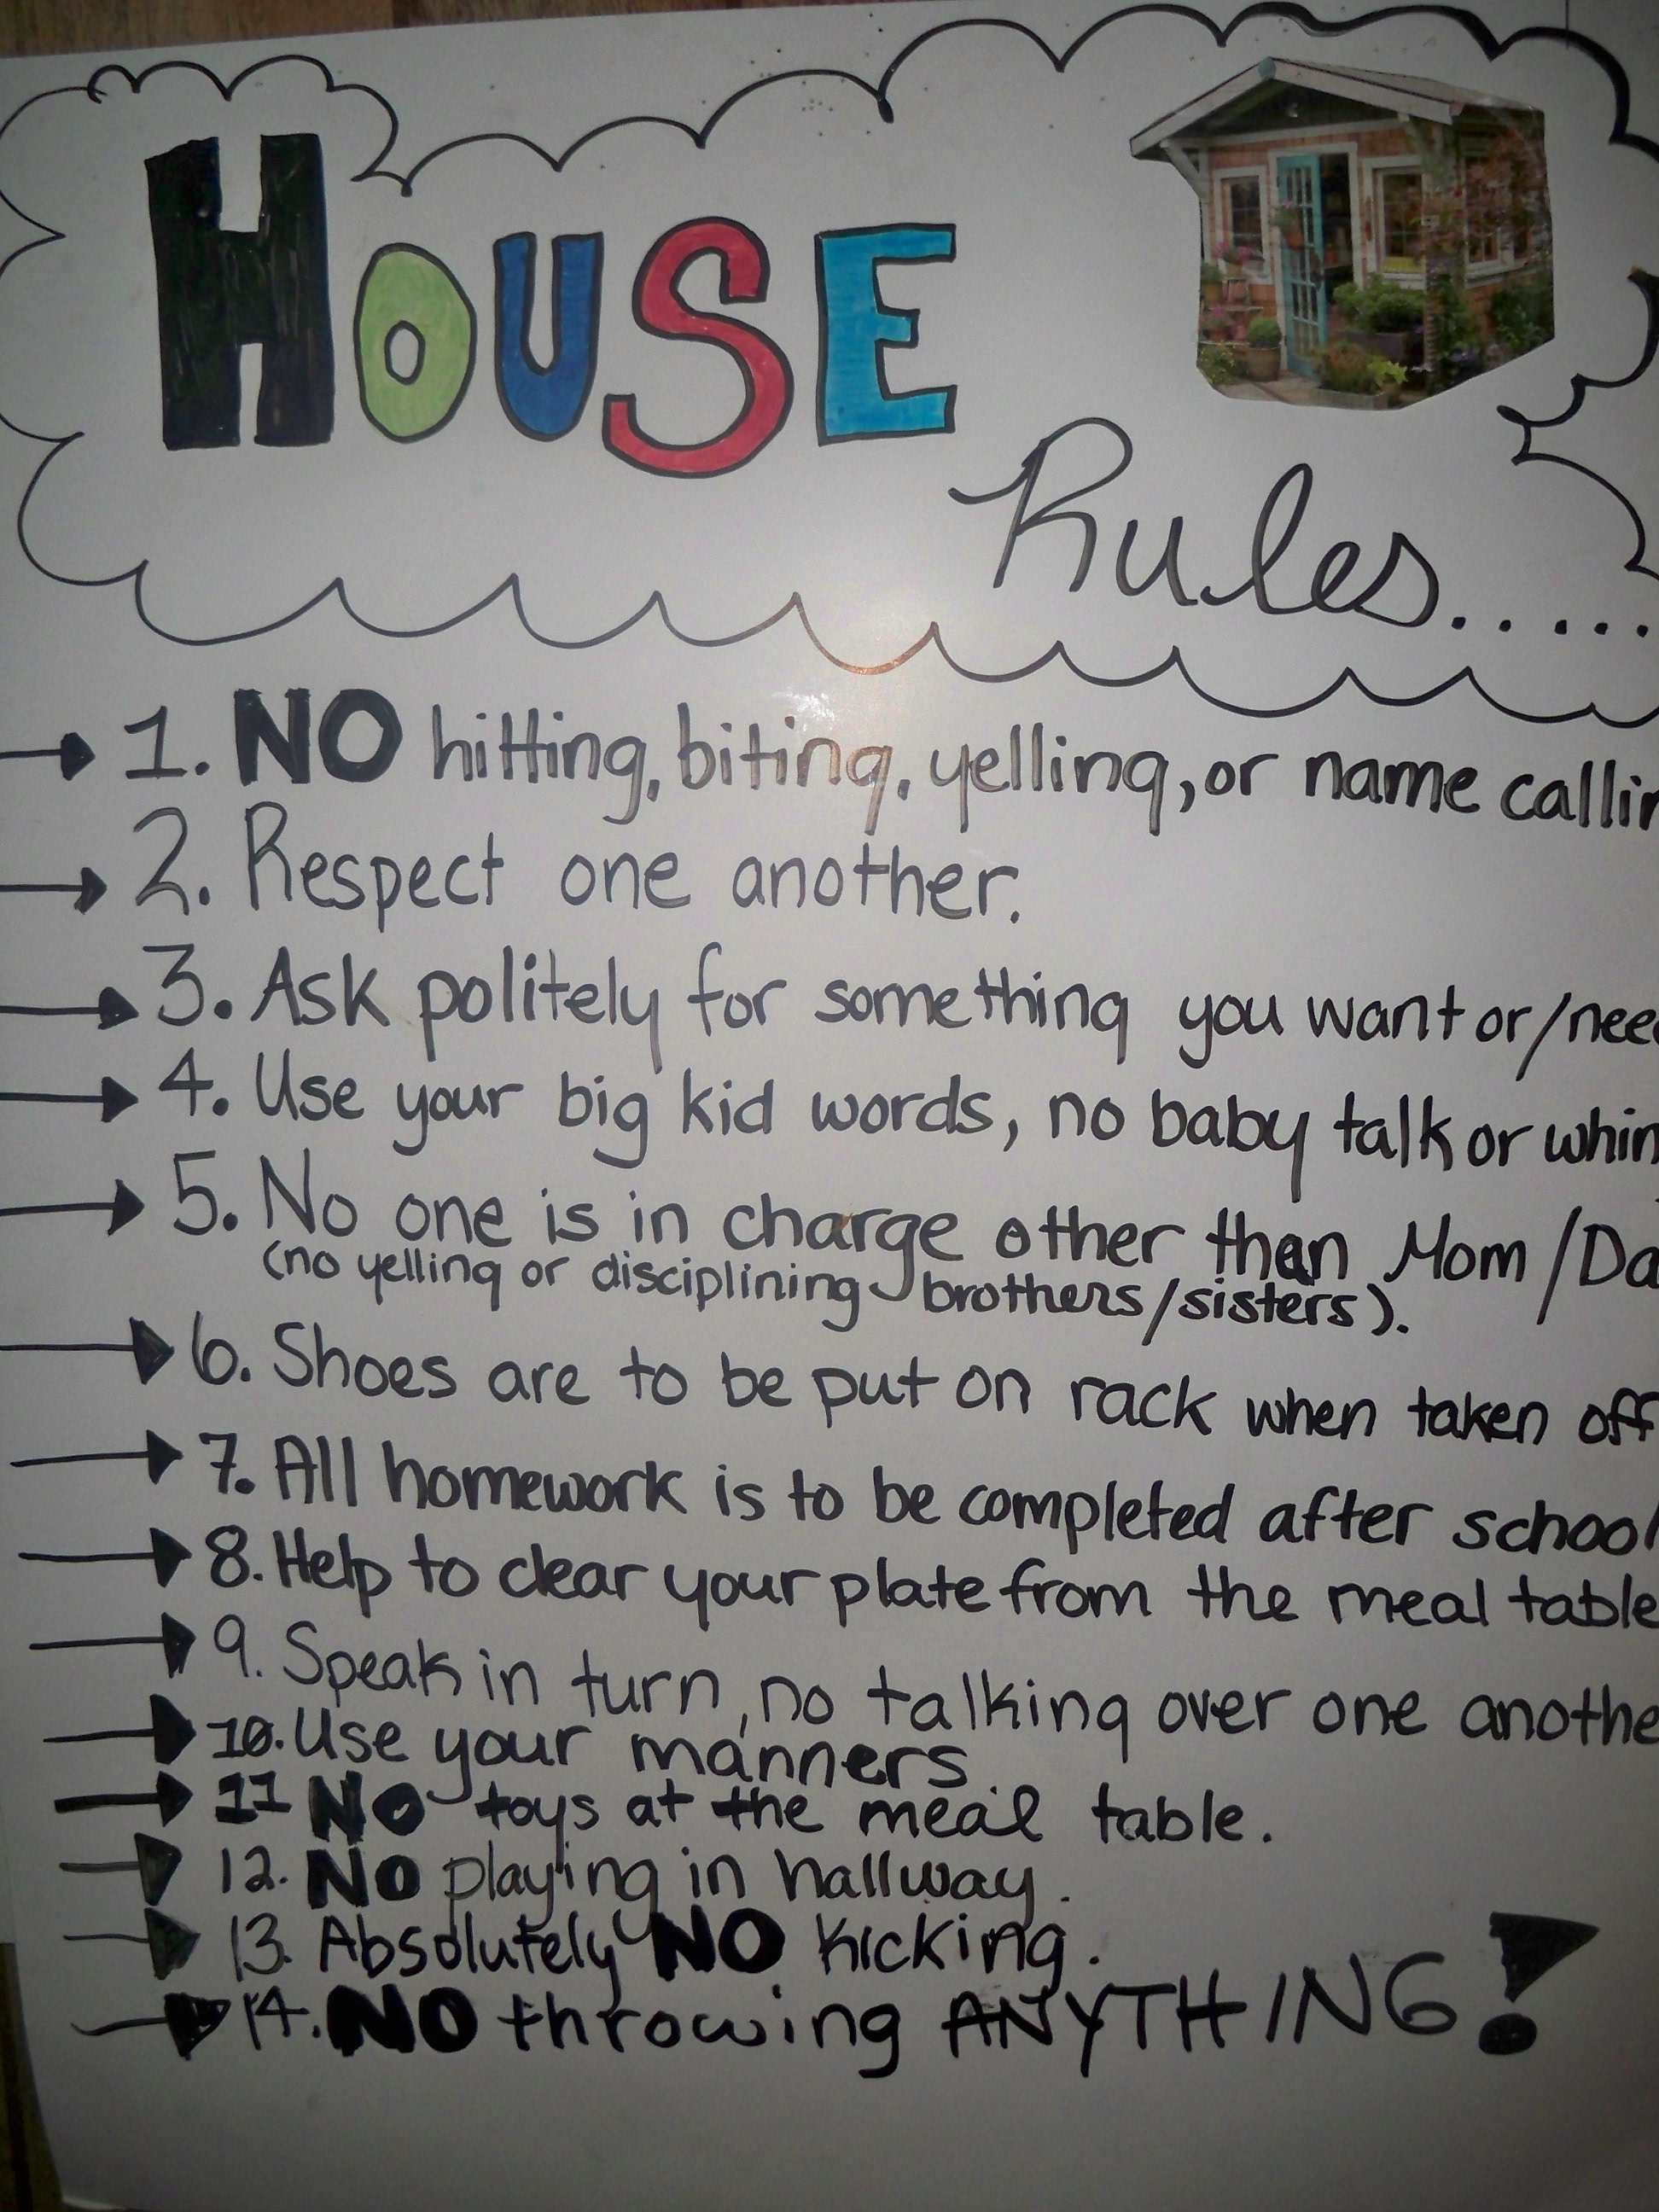 Kids House Rules